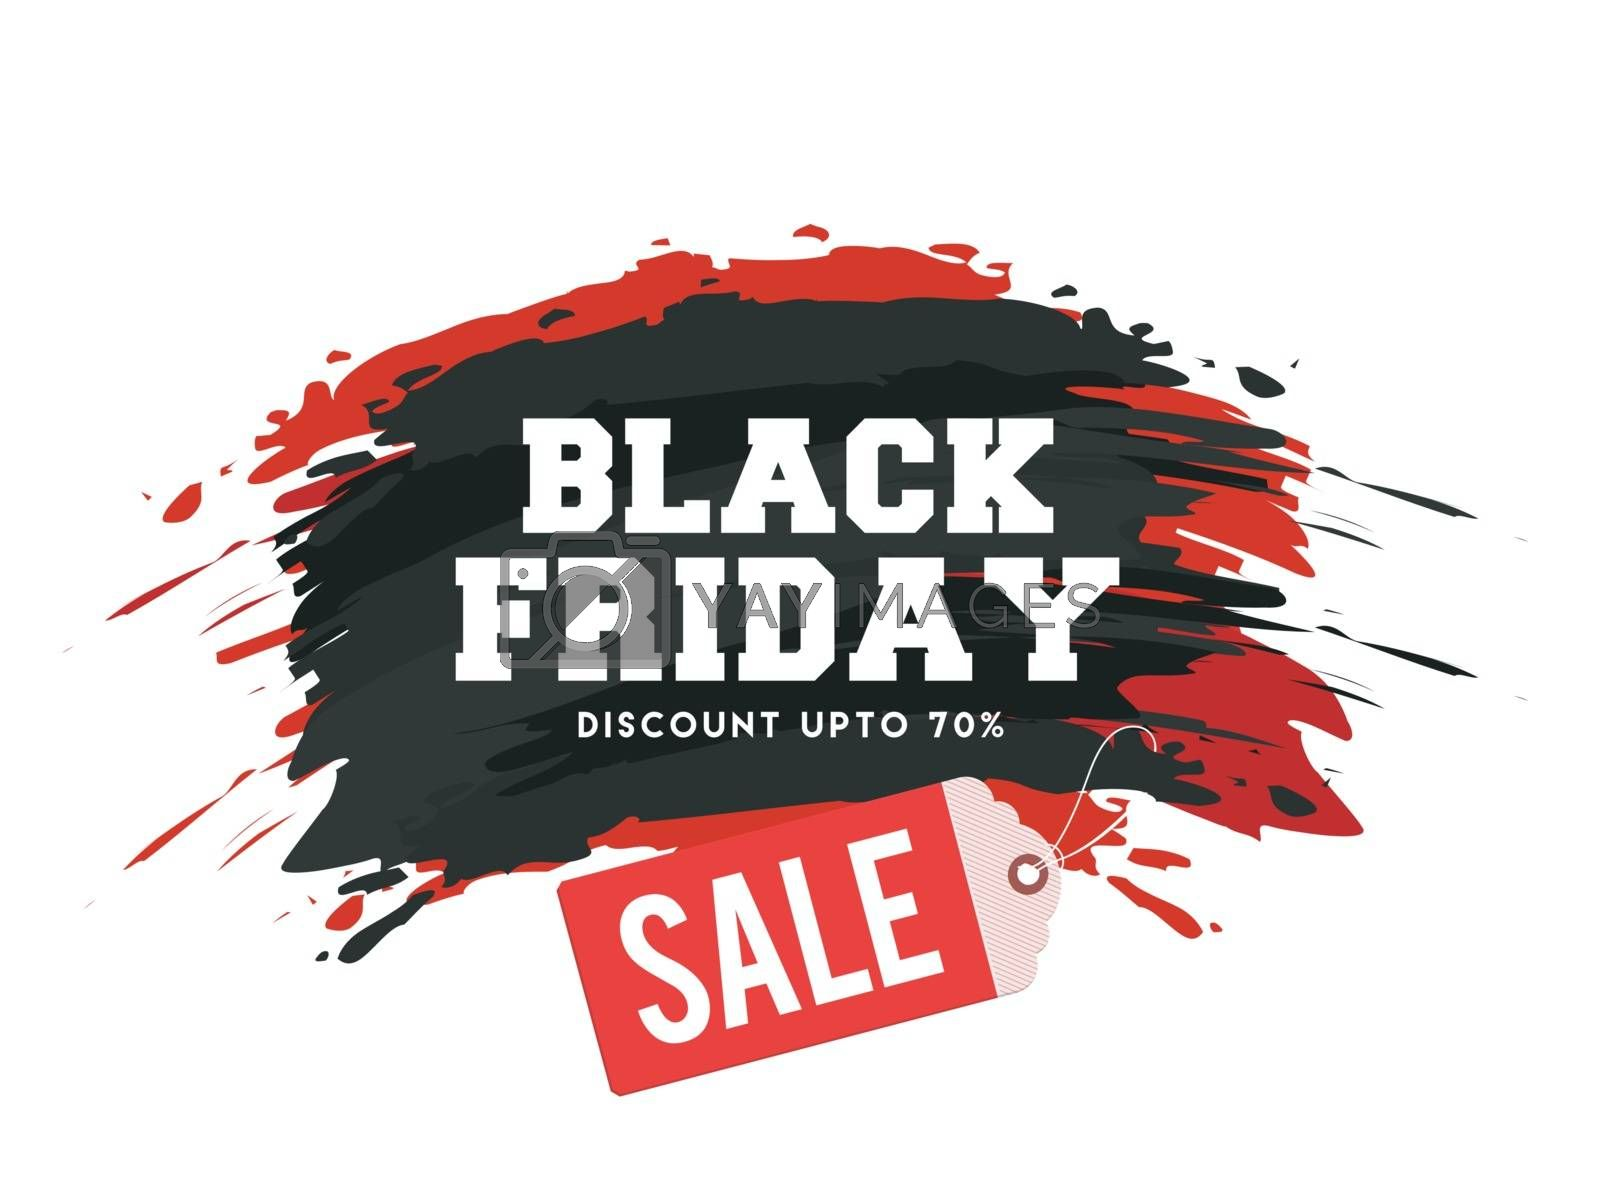 Black Friday Sale text with 70% discount offer on brush stroke background for Advertising banner or poster design.